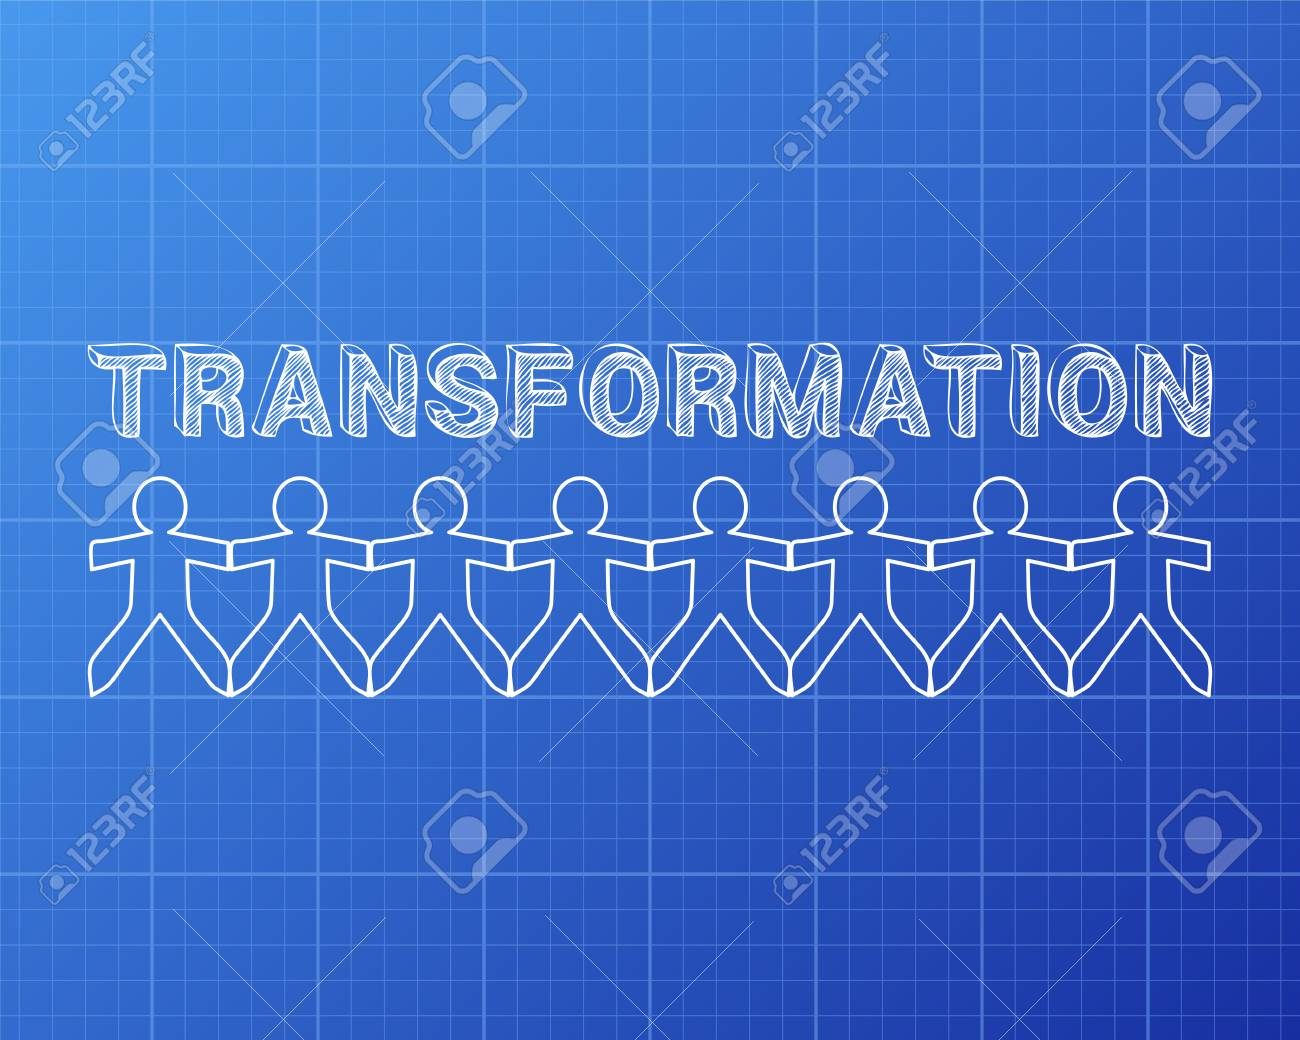 Transformation text hand drawn with paper people on blueprint transformation text hand drawn with paper people on blueprint background stock vector 75783075 malvernweather Choice Image